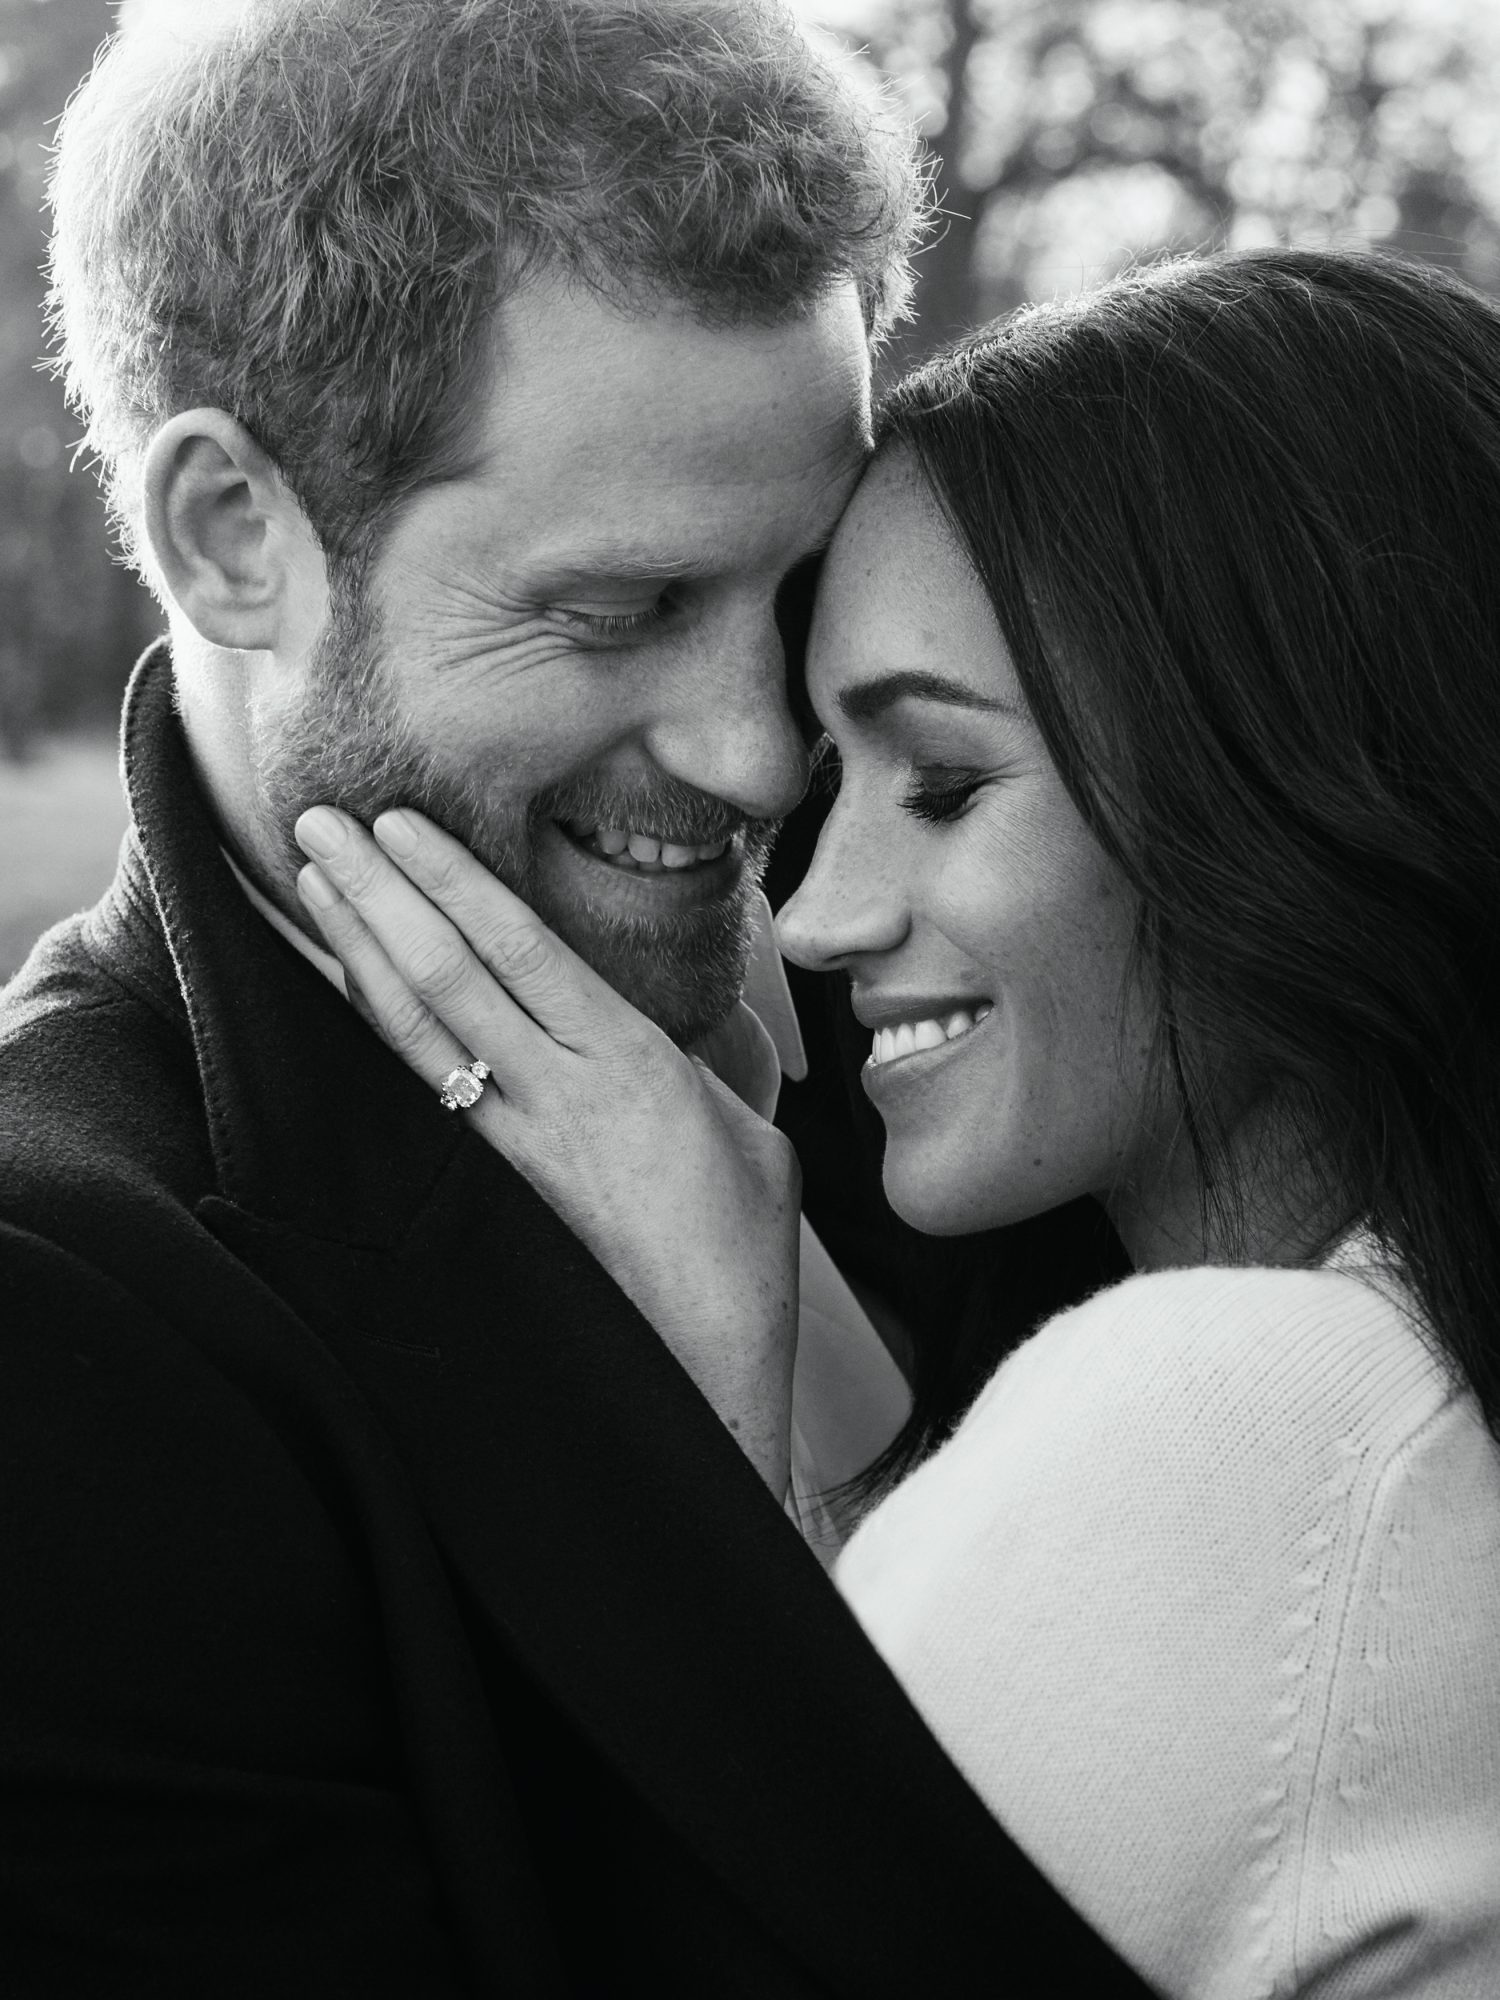 meghan-markle-prince-harry-engagement-photos.jpg